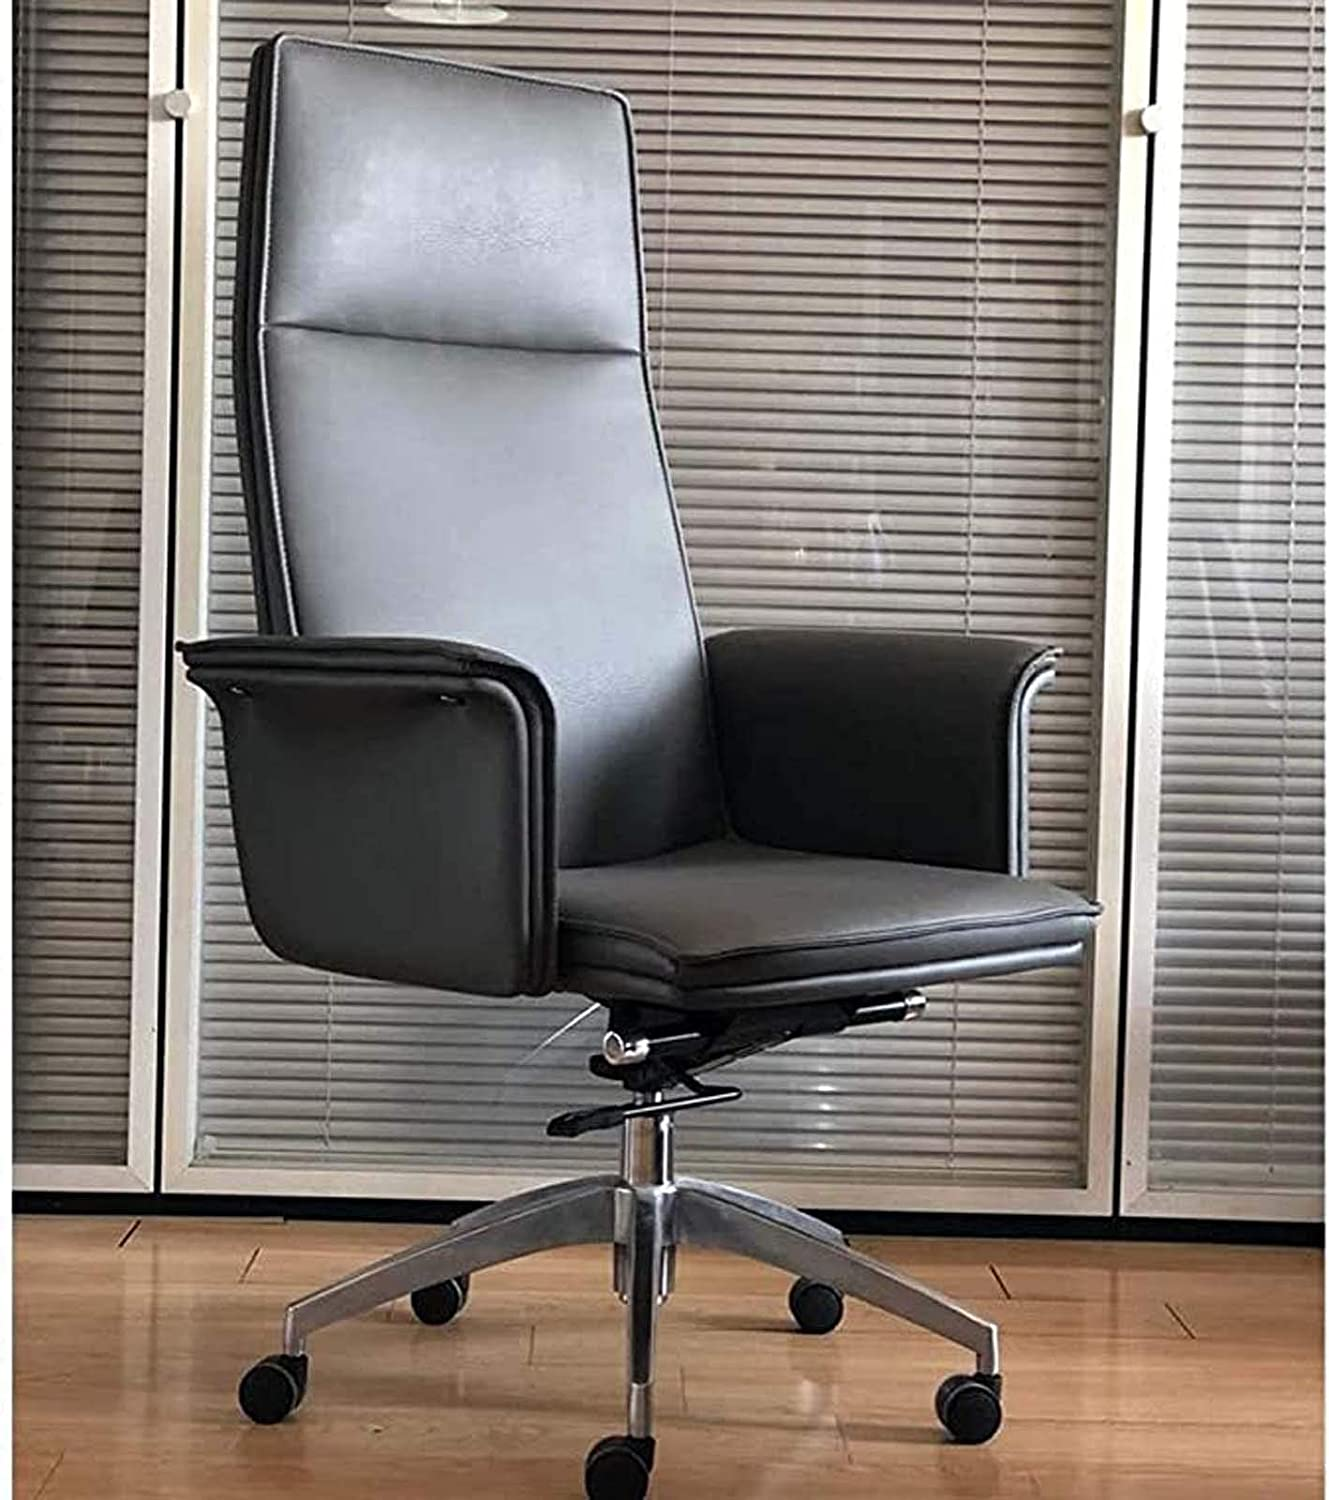 Minimalist Office Chair, High-Back Leather Manager Chair, Reclining Swivel Office Chair Executive Chair, Fashionable Modern Light Luxury